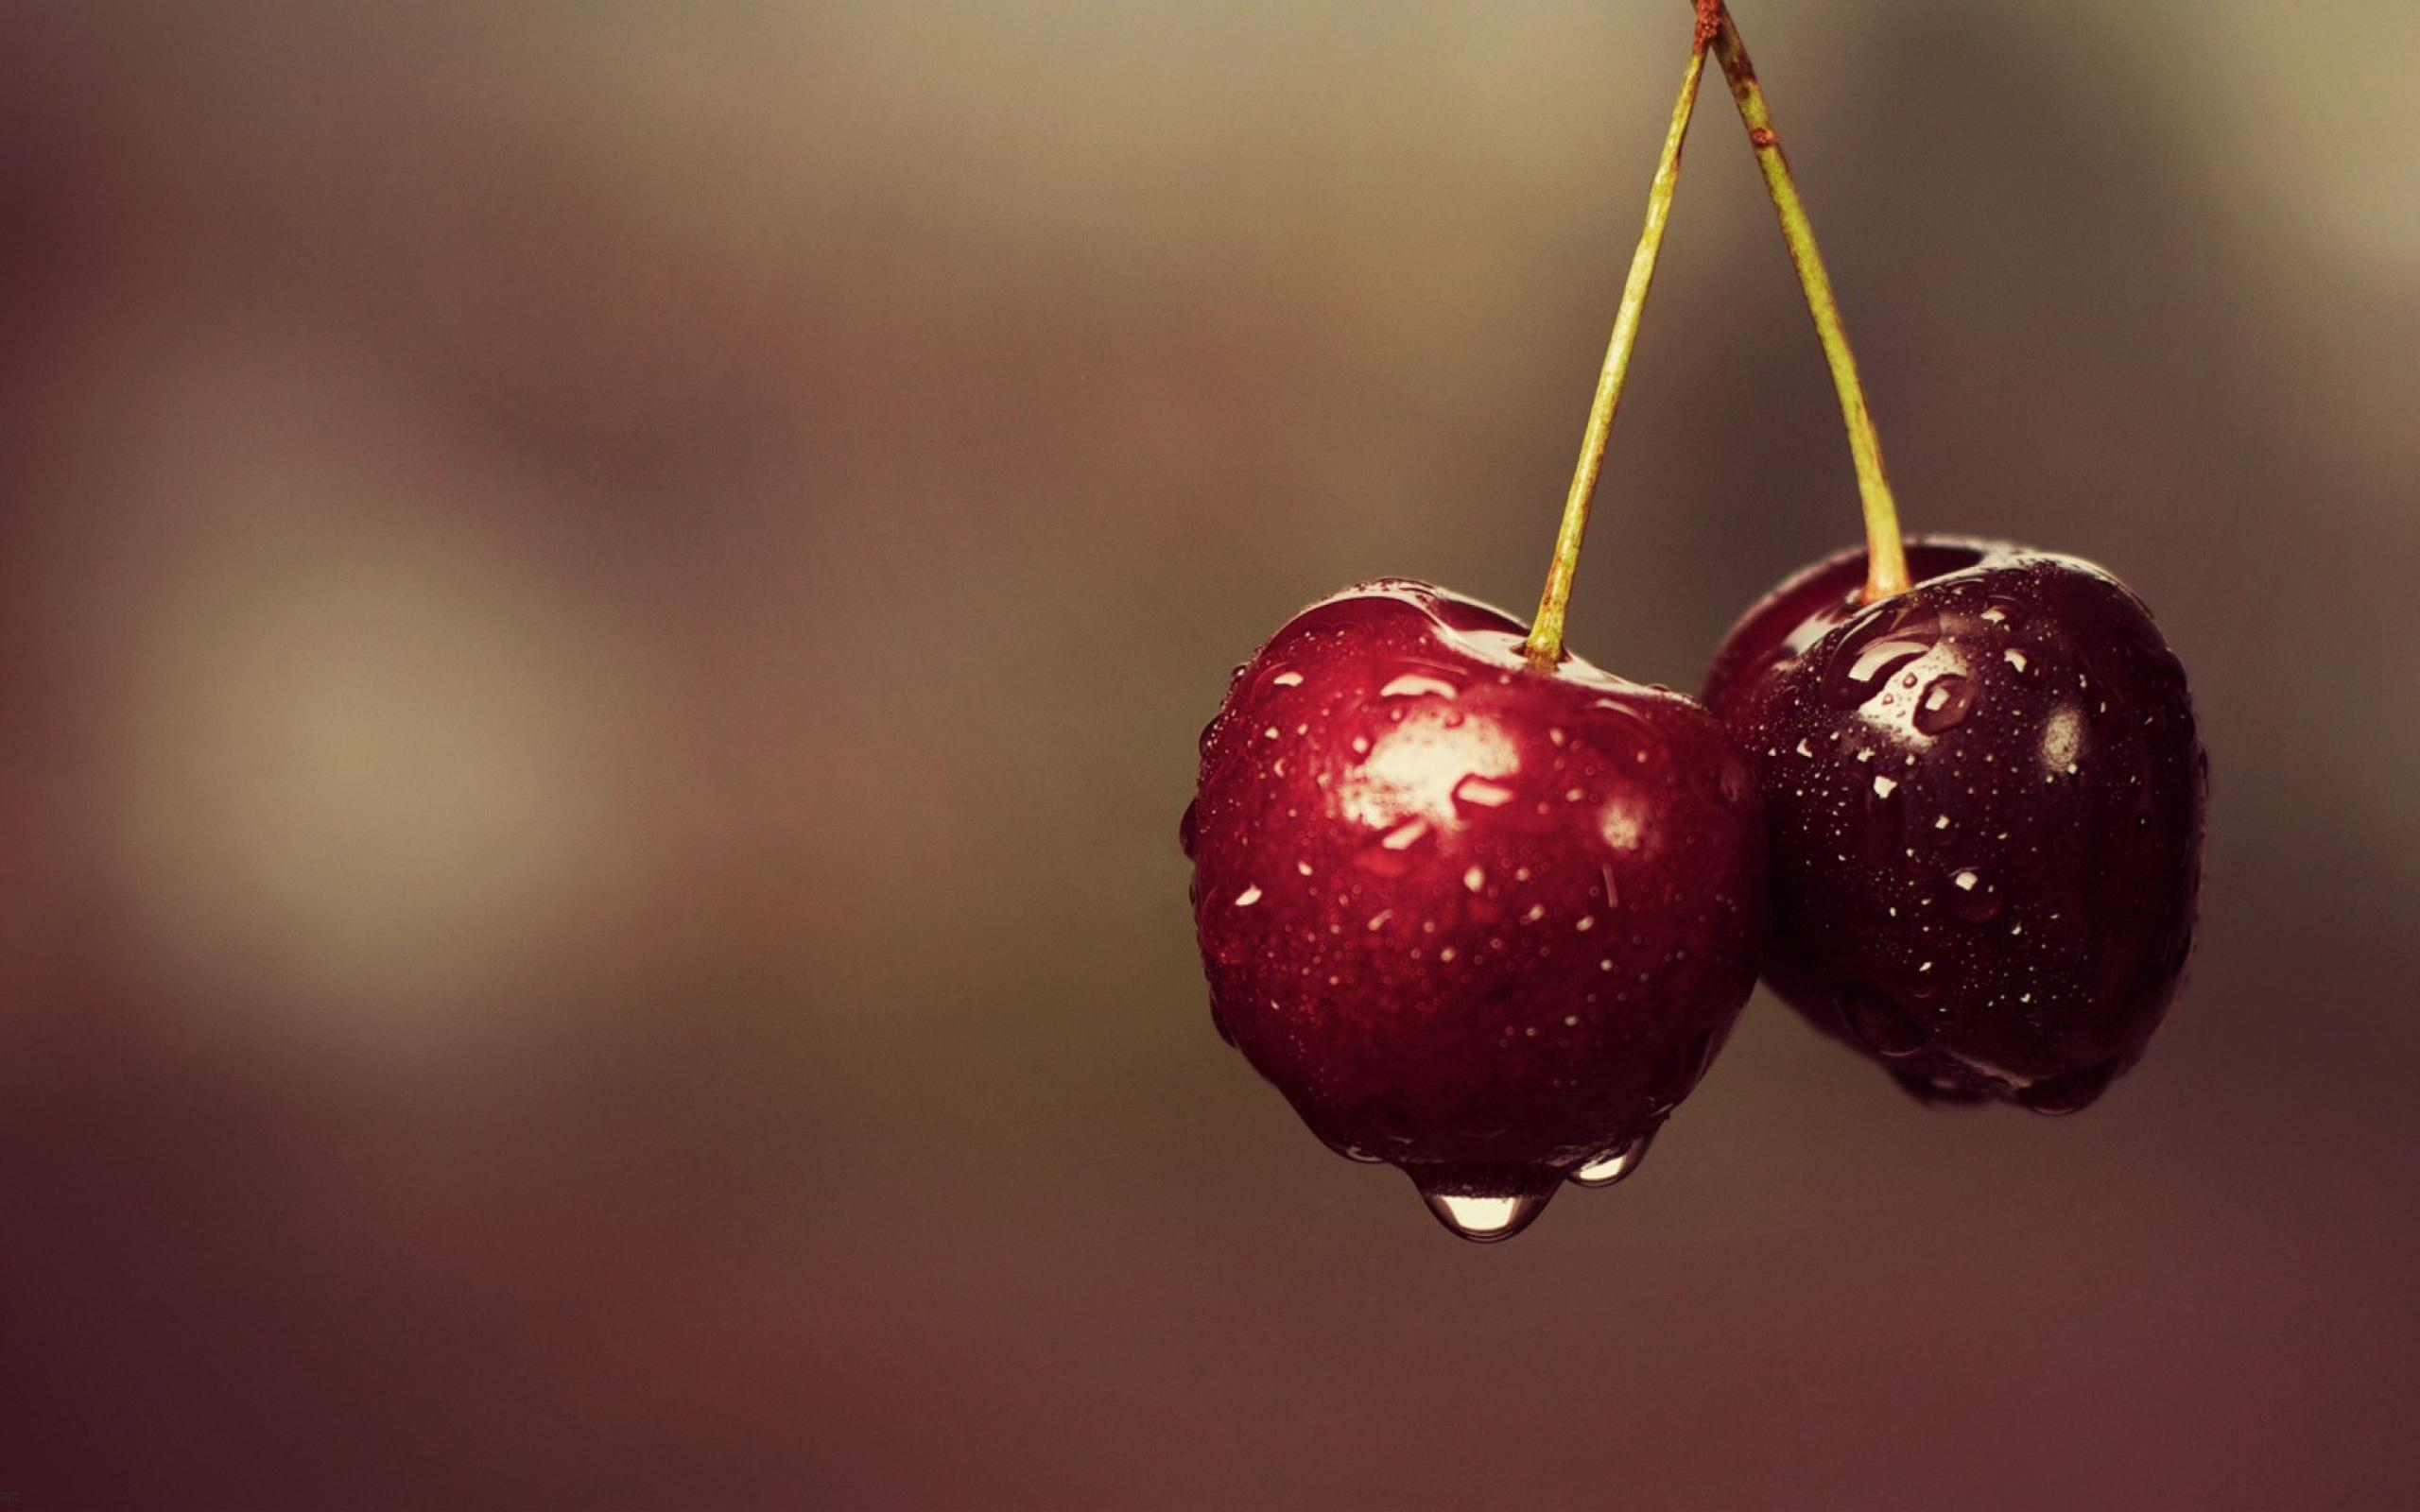 Wet Cherries